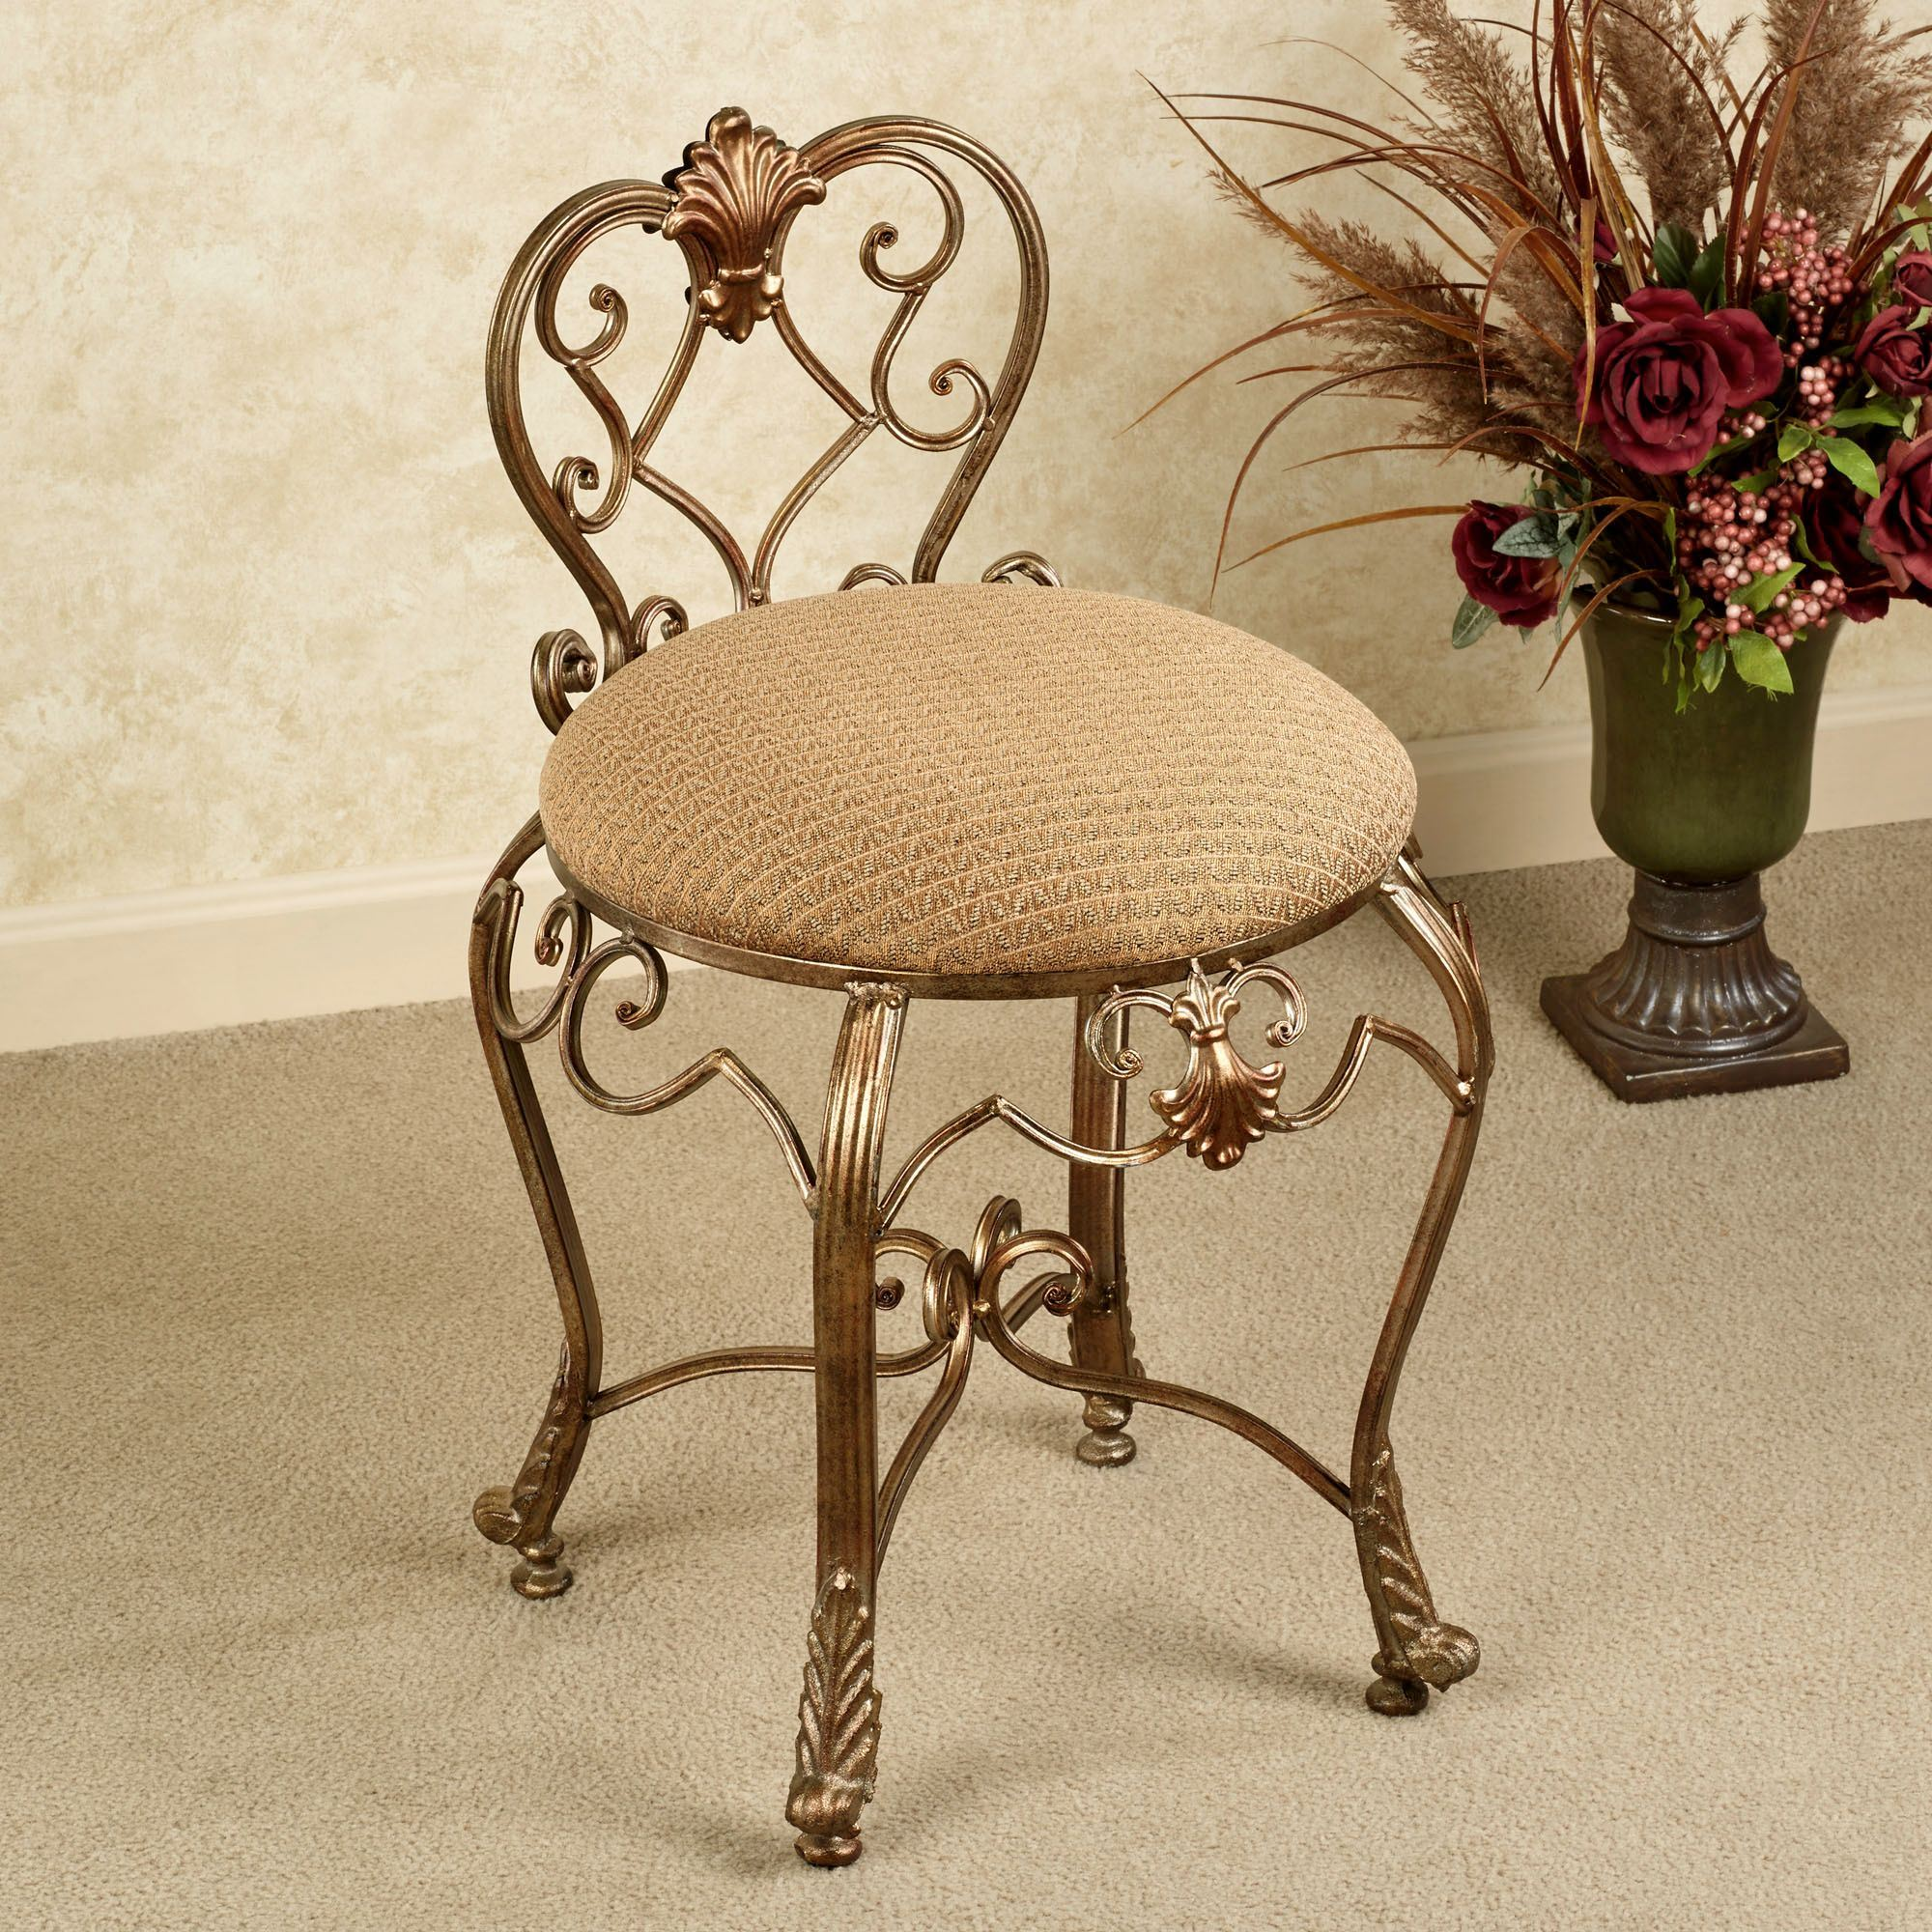 Etonnant Stratton Vanity Chair. Touch To Zoom